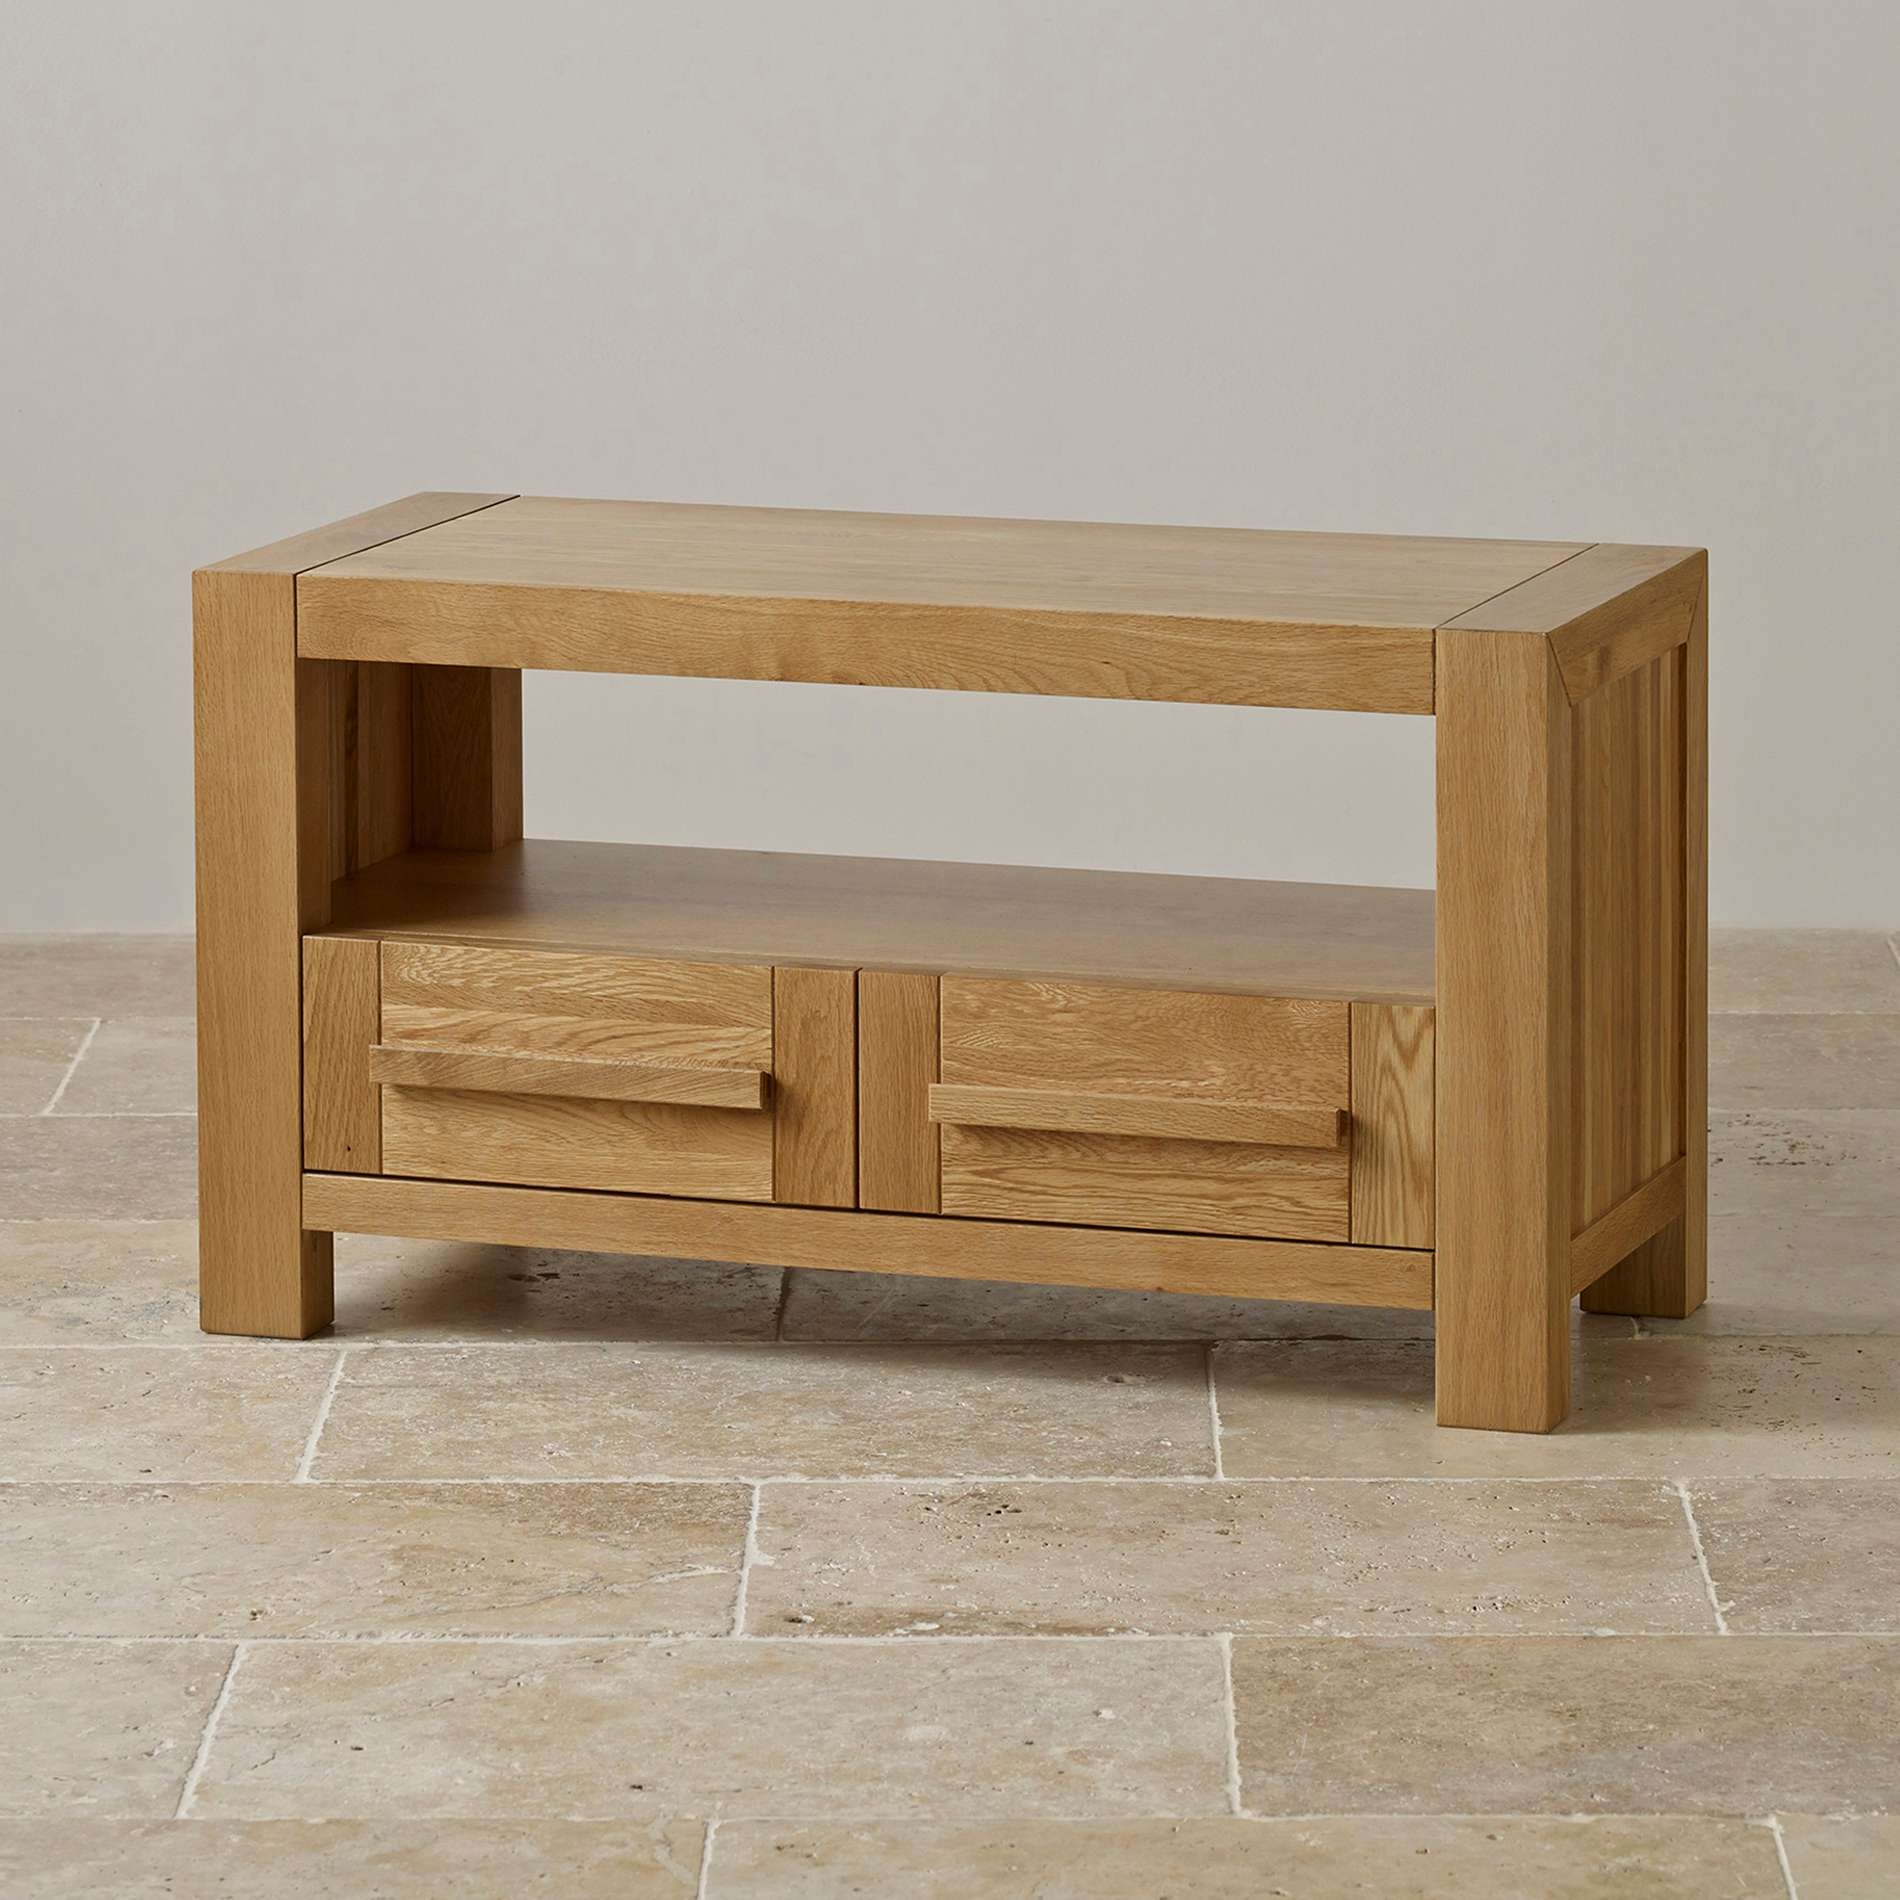 Fancy Solid Oak Tv Stand 34 For Small Home Remodel Ideas With For Oak Tv Stands Furniture (View 11 of 15)